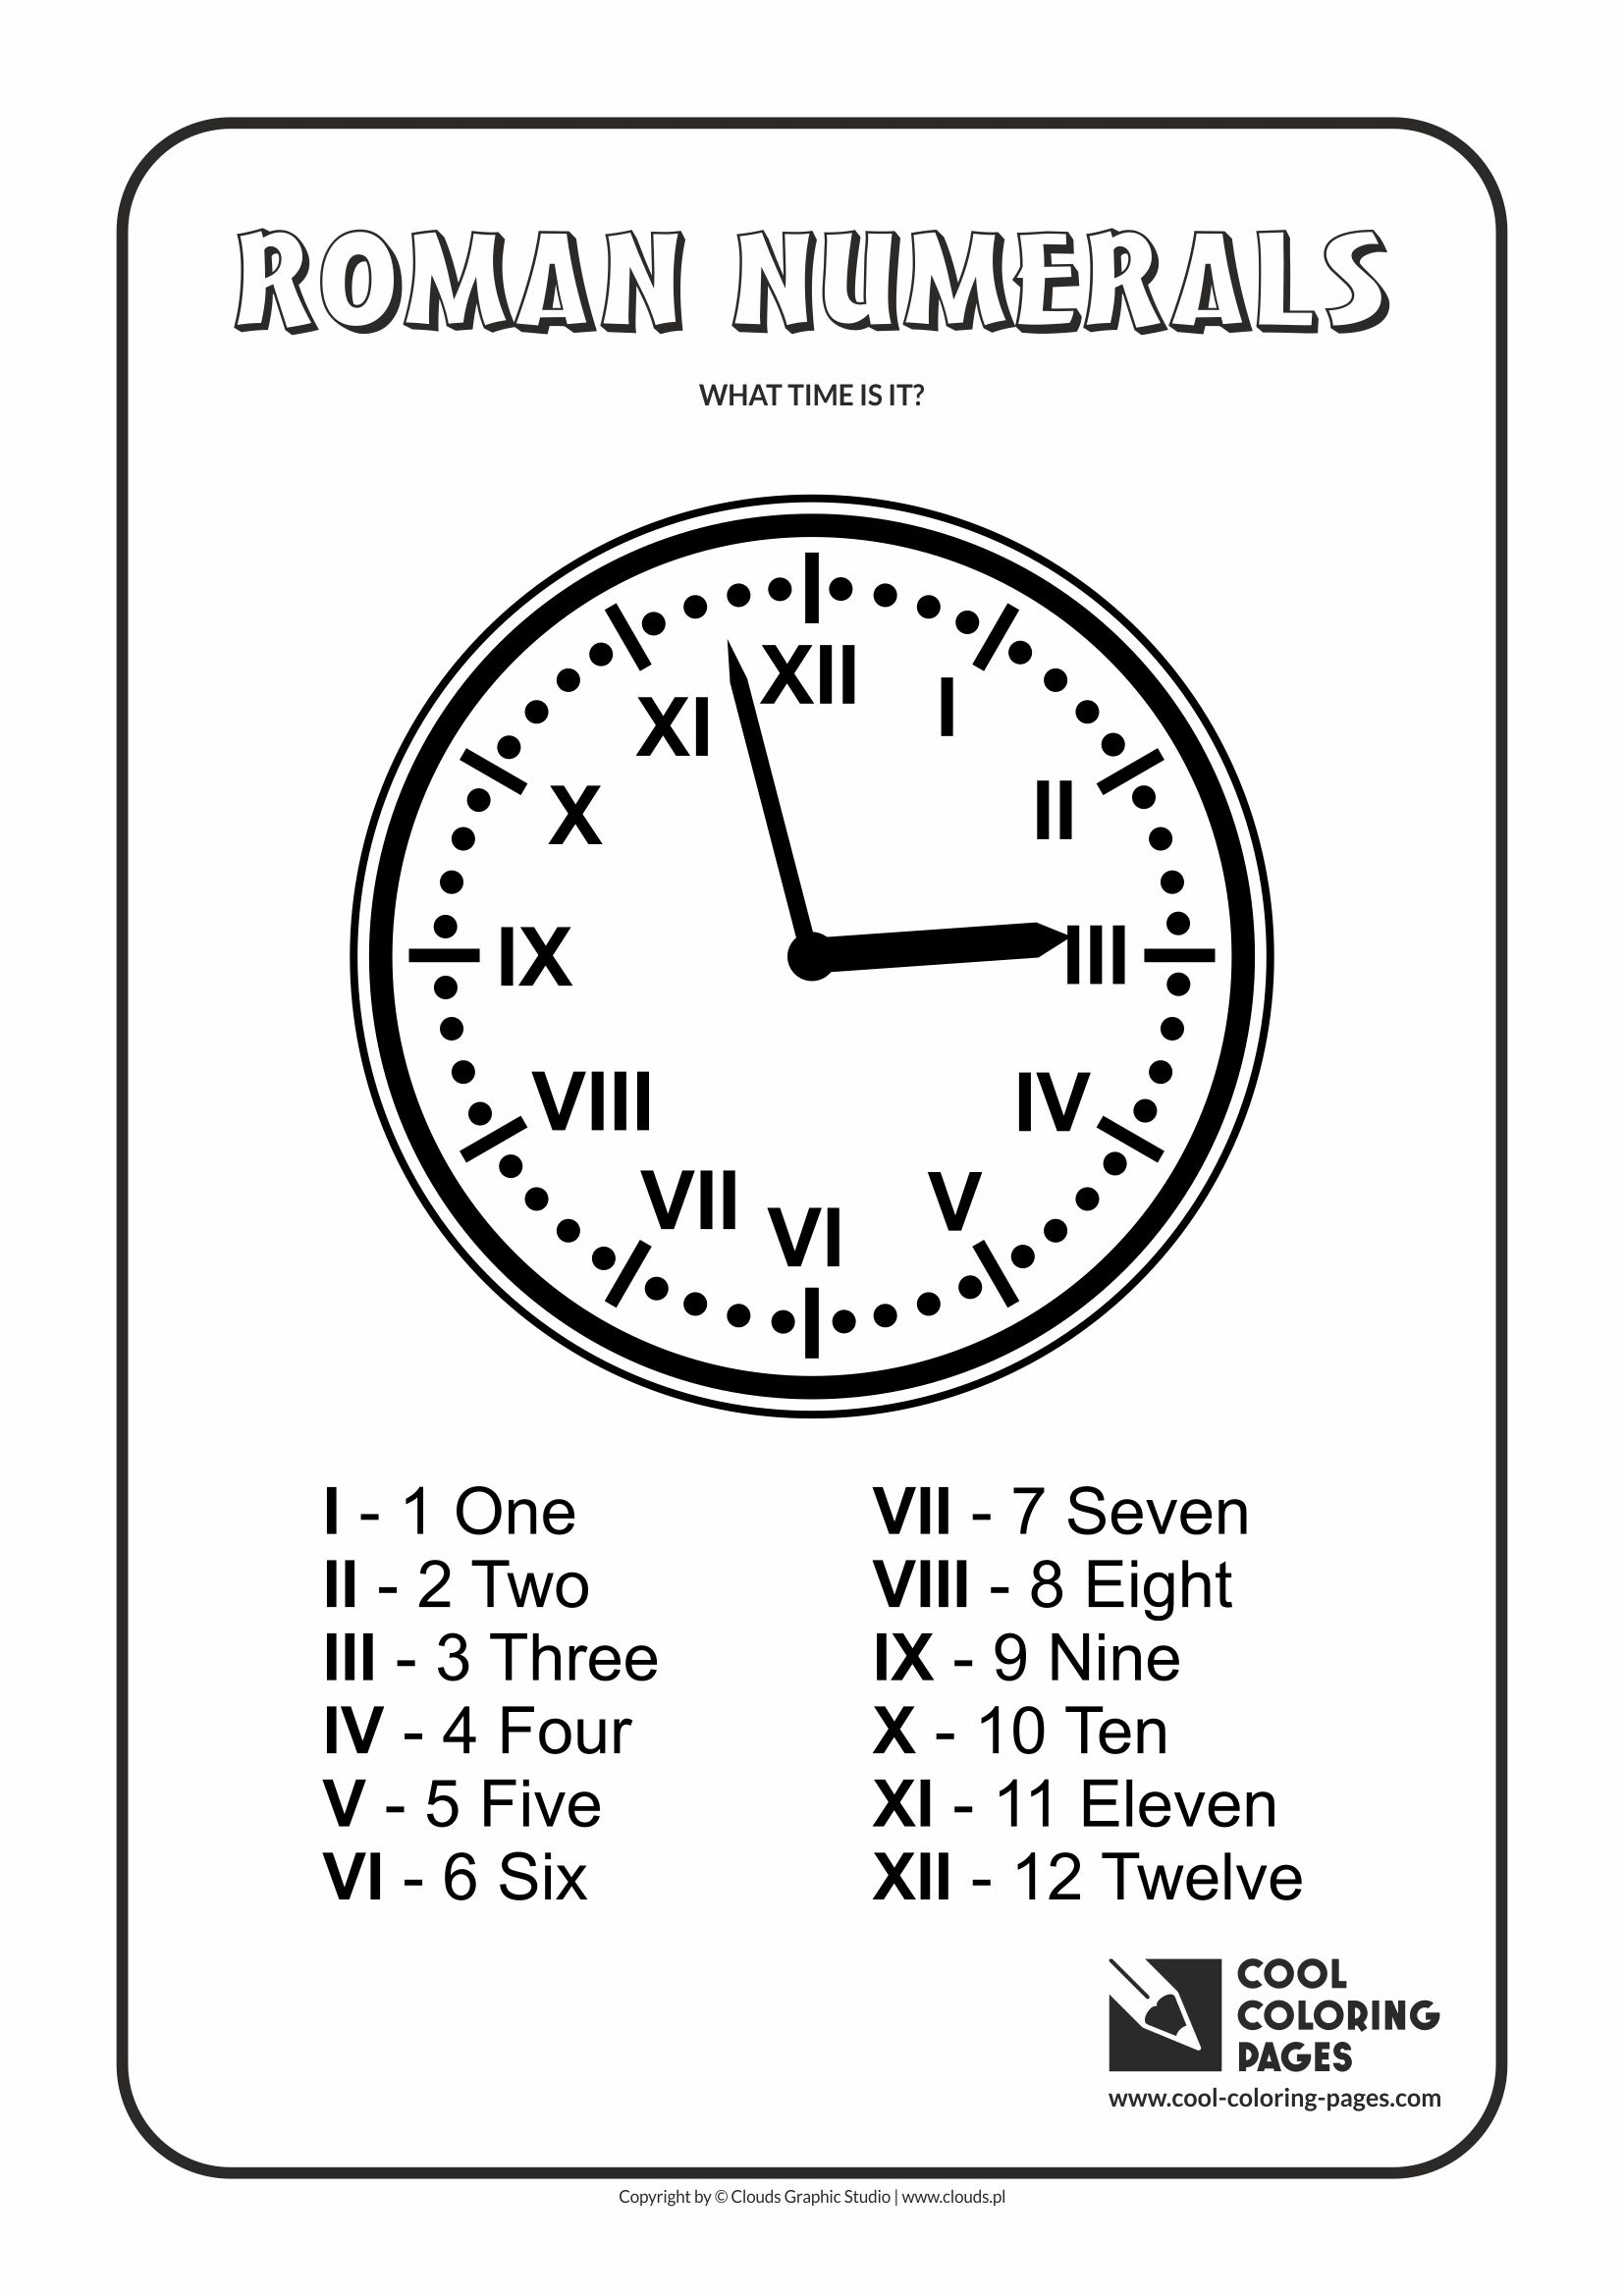 Cool Coloring Pages Roman Numerals